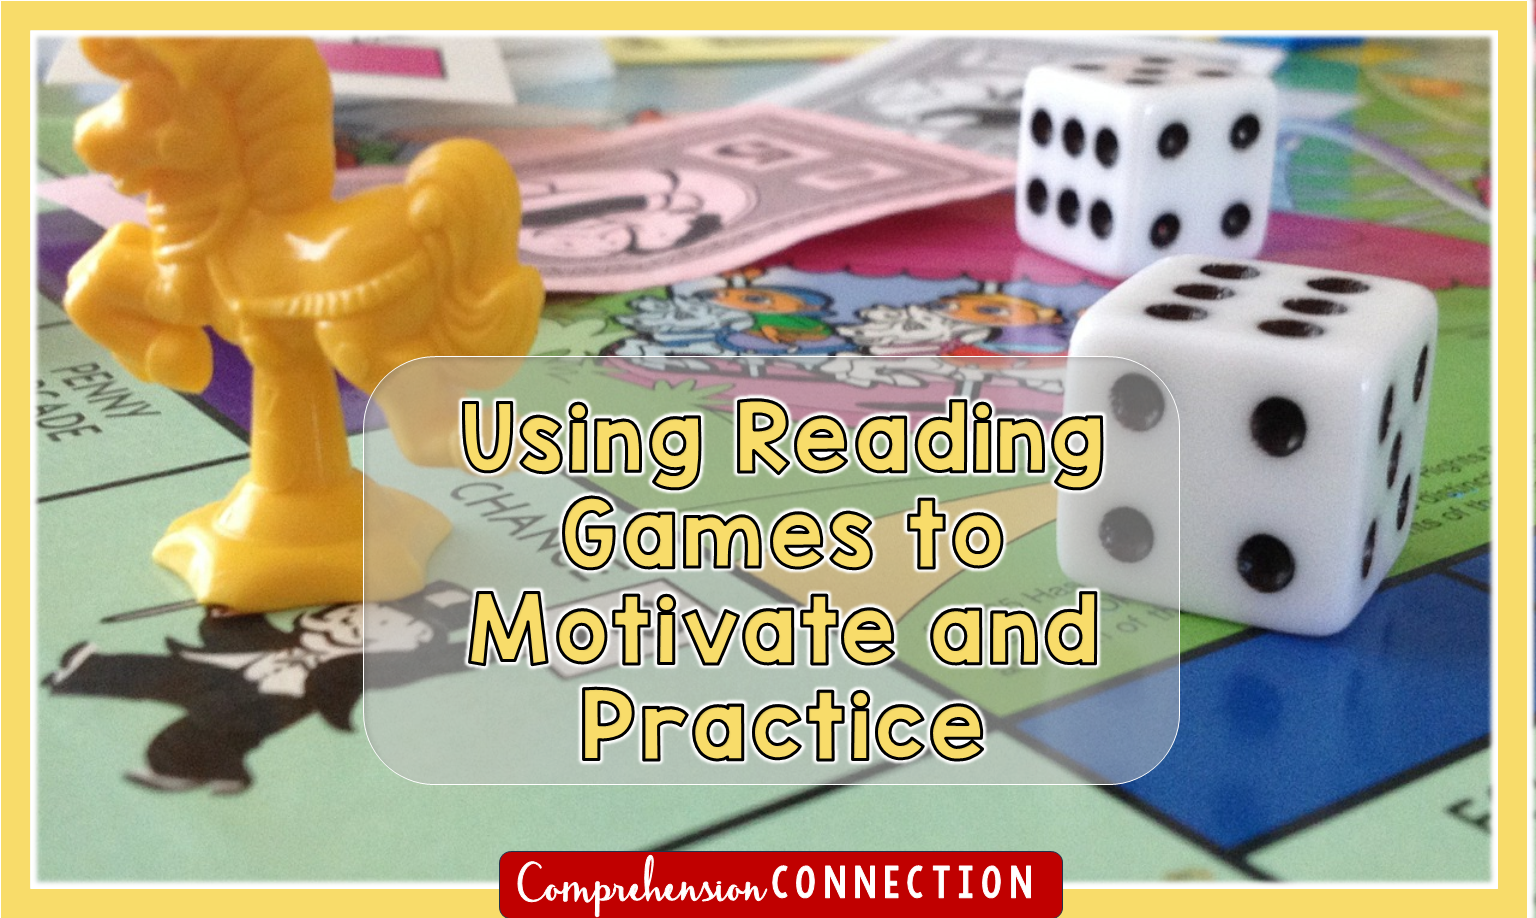 Reading games provide excitement, motivation, and skill building. They're perfect for small group instruction and whole group review. Check out this post to learn about ways you can use games for your instruction.